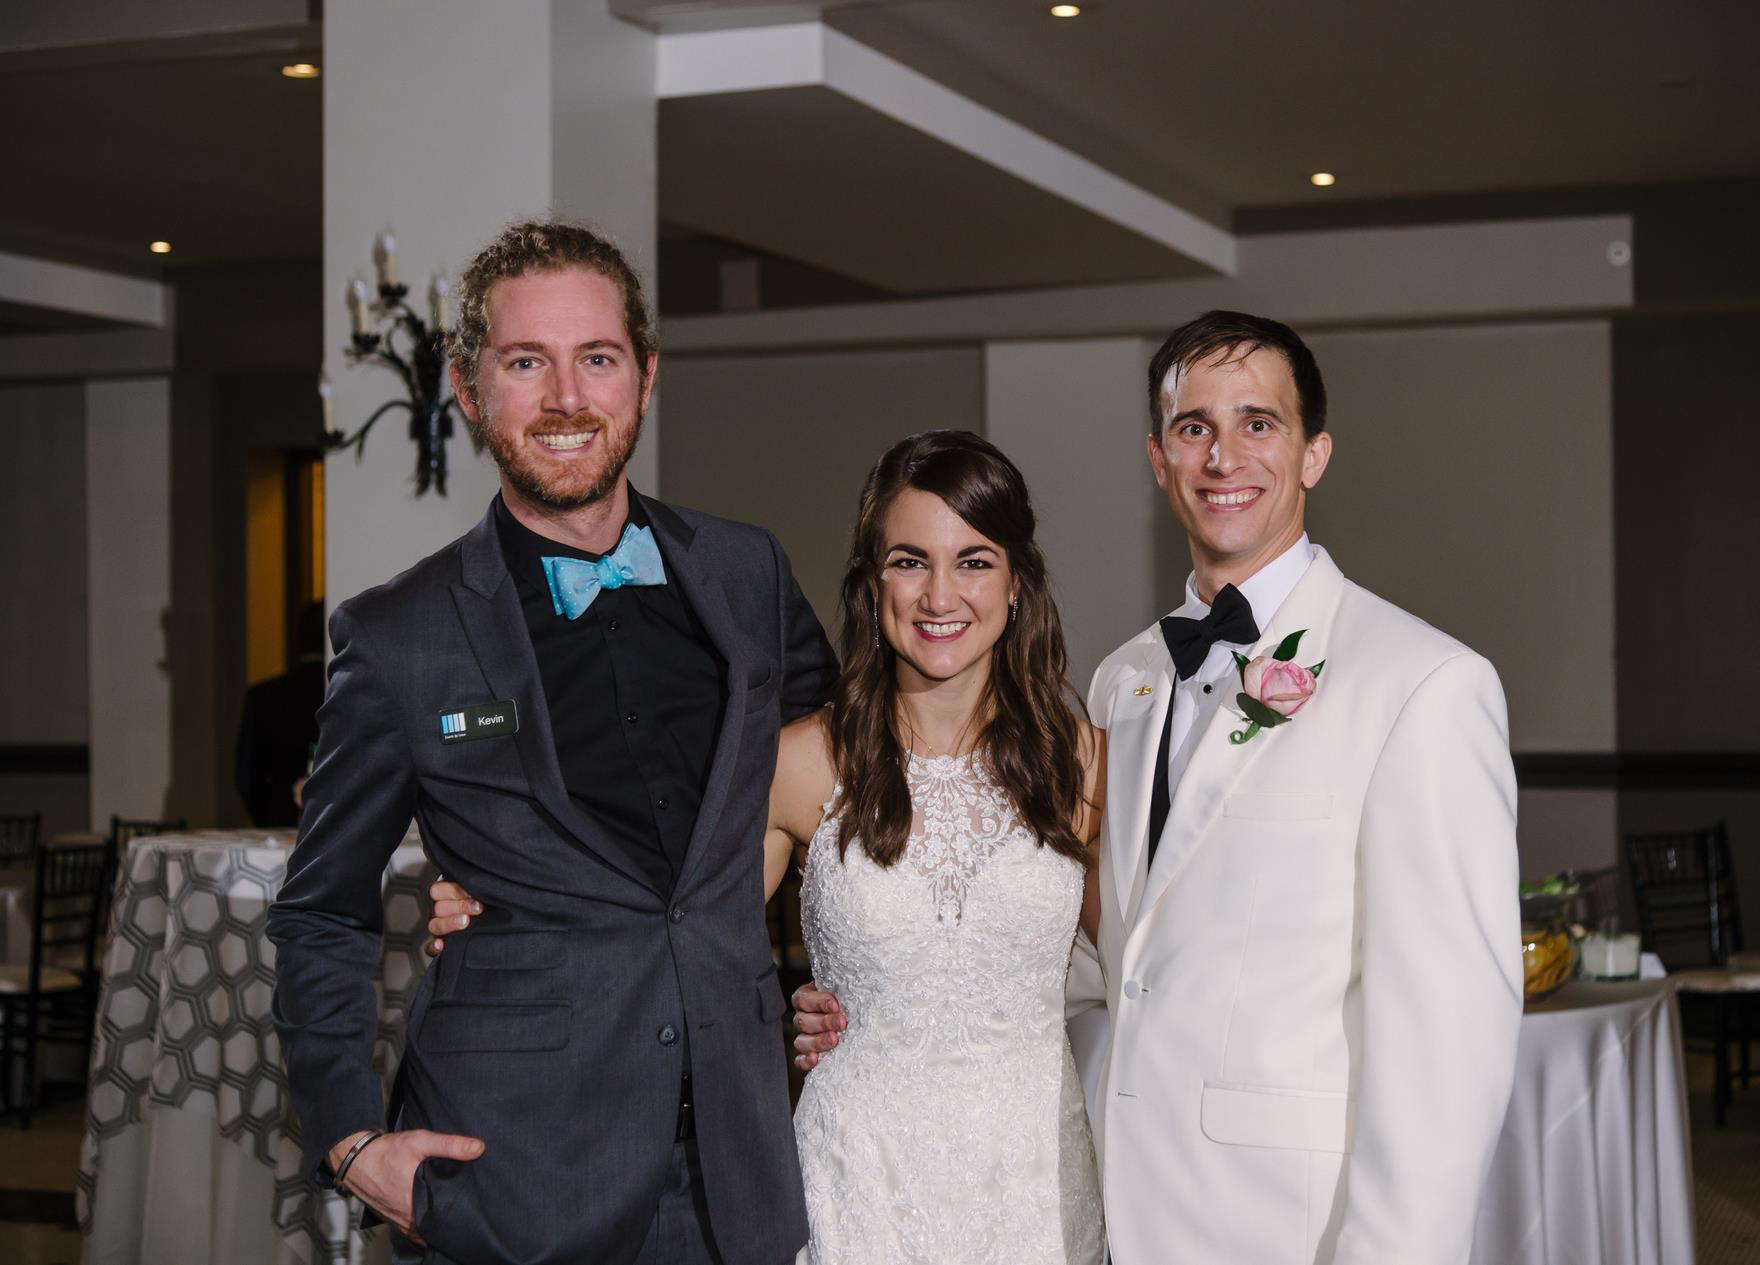 Kevin with Bride and Groom